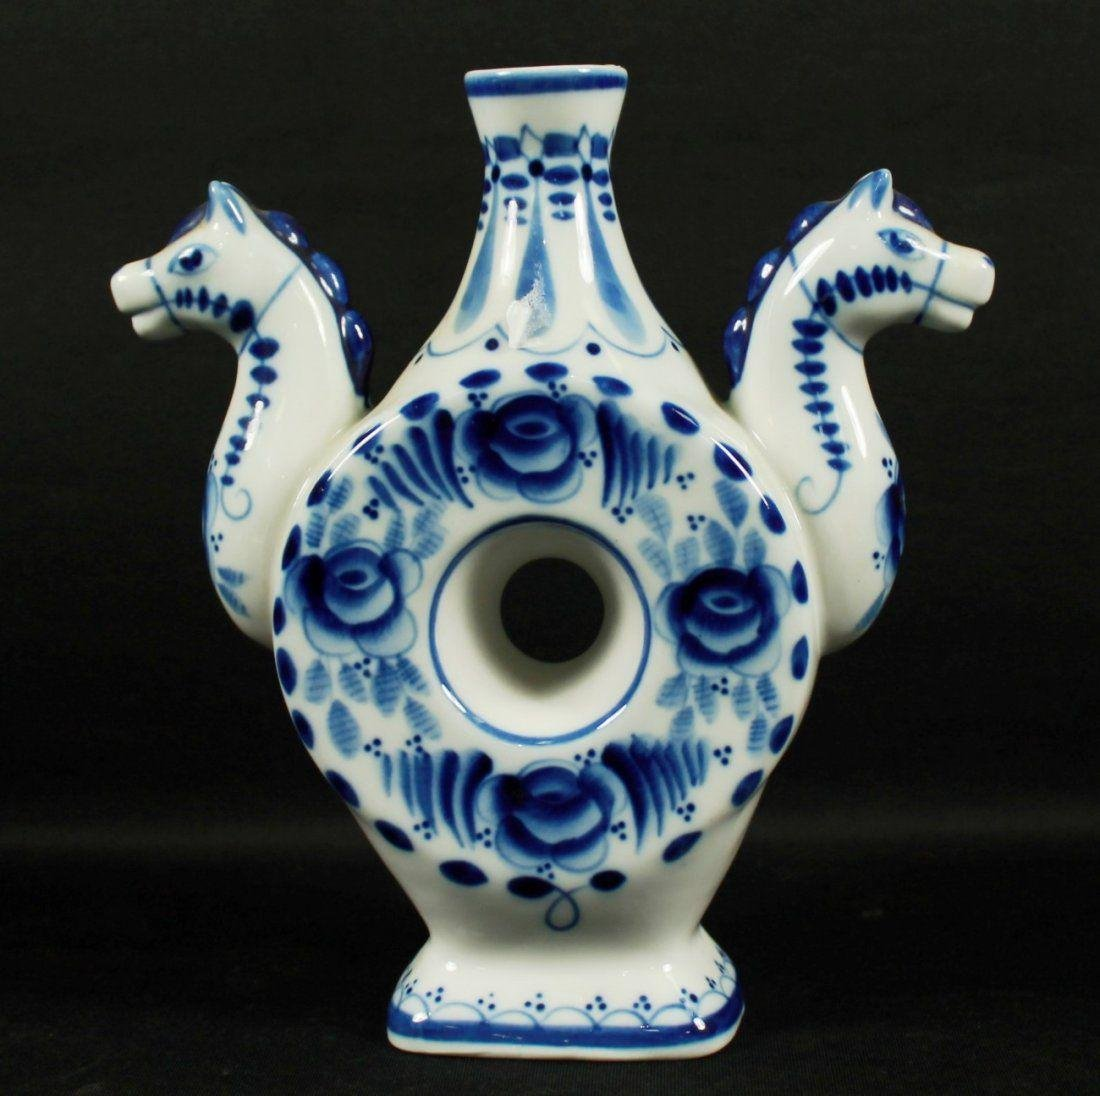 Russian Porcelain Vase With Horse Handles